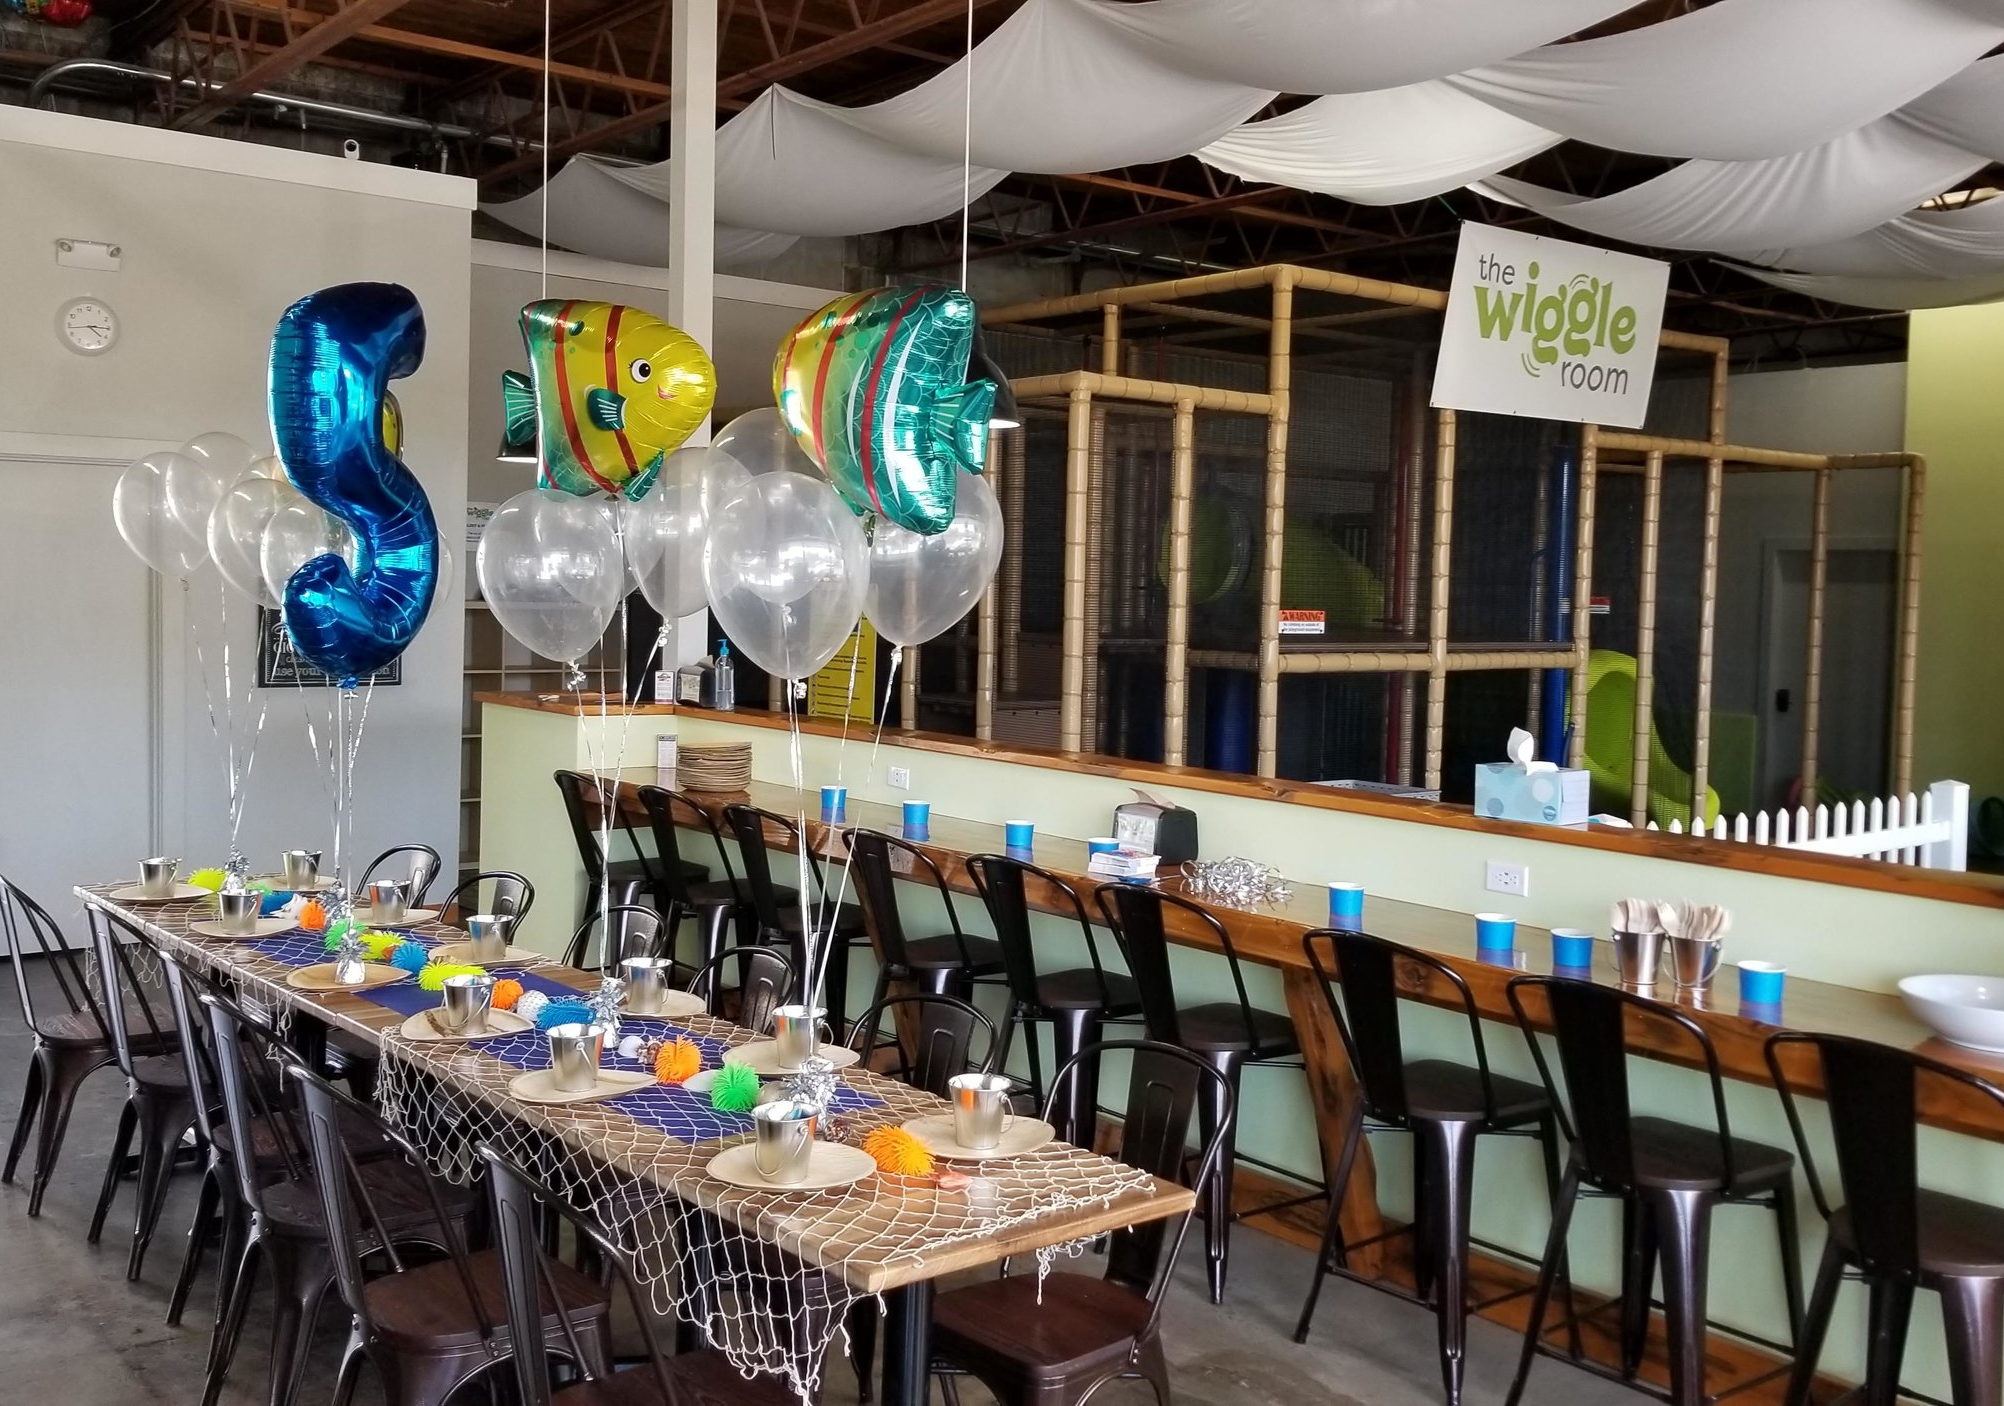 Rent our space for birthdays or other celebratory activities. The rate starts at $295 for a 2 hour party after our normal business hours. And, outside food is always welcome.* Email  chris@thewiggleroom.com  to request details or check our  Parties page .  * Please remember party items such as birthday cake, presents, decorations etc are only allowed inside The Wiggle Room with a birthday party reservation.